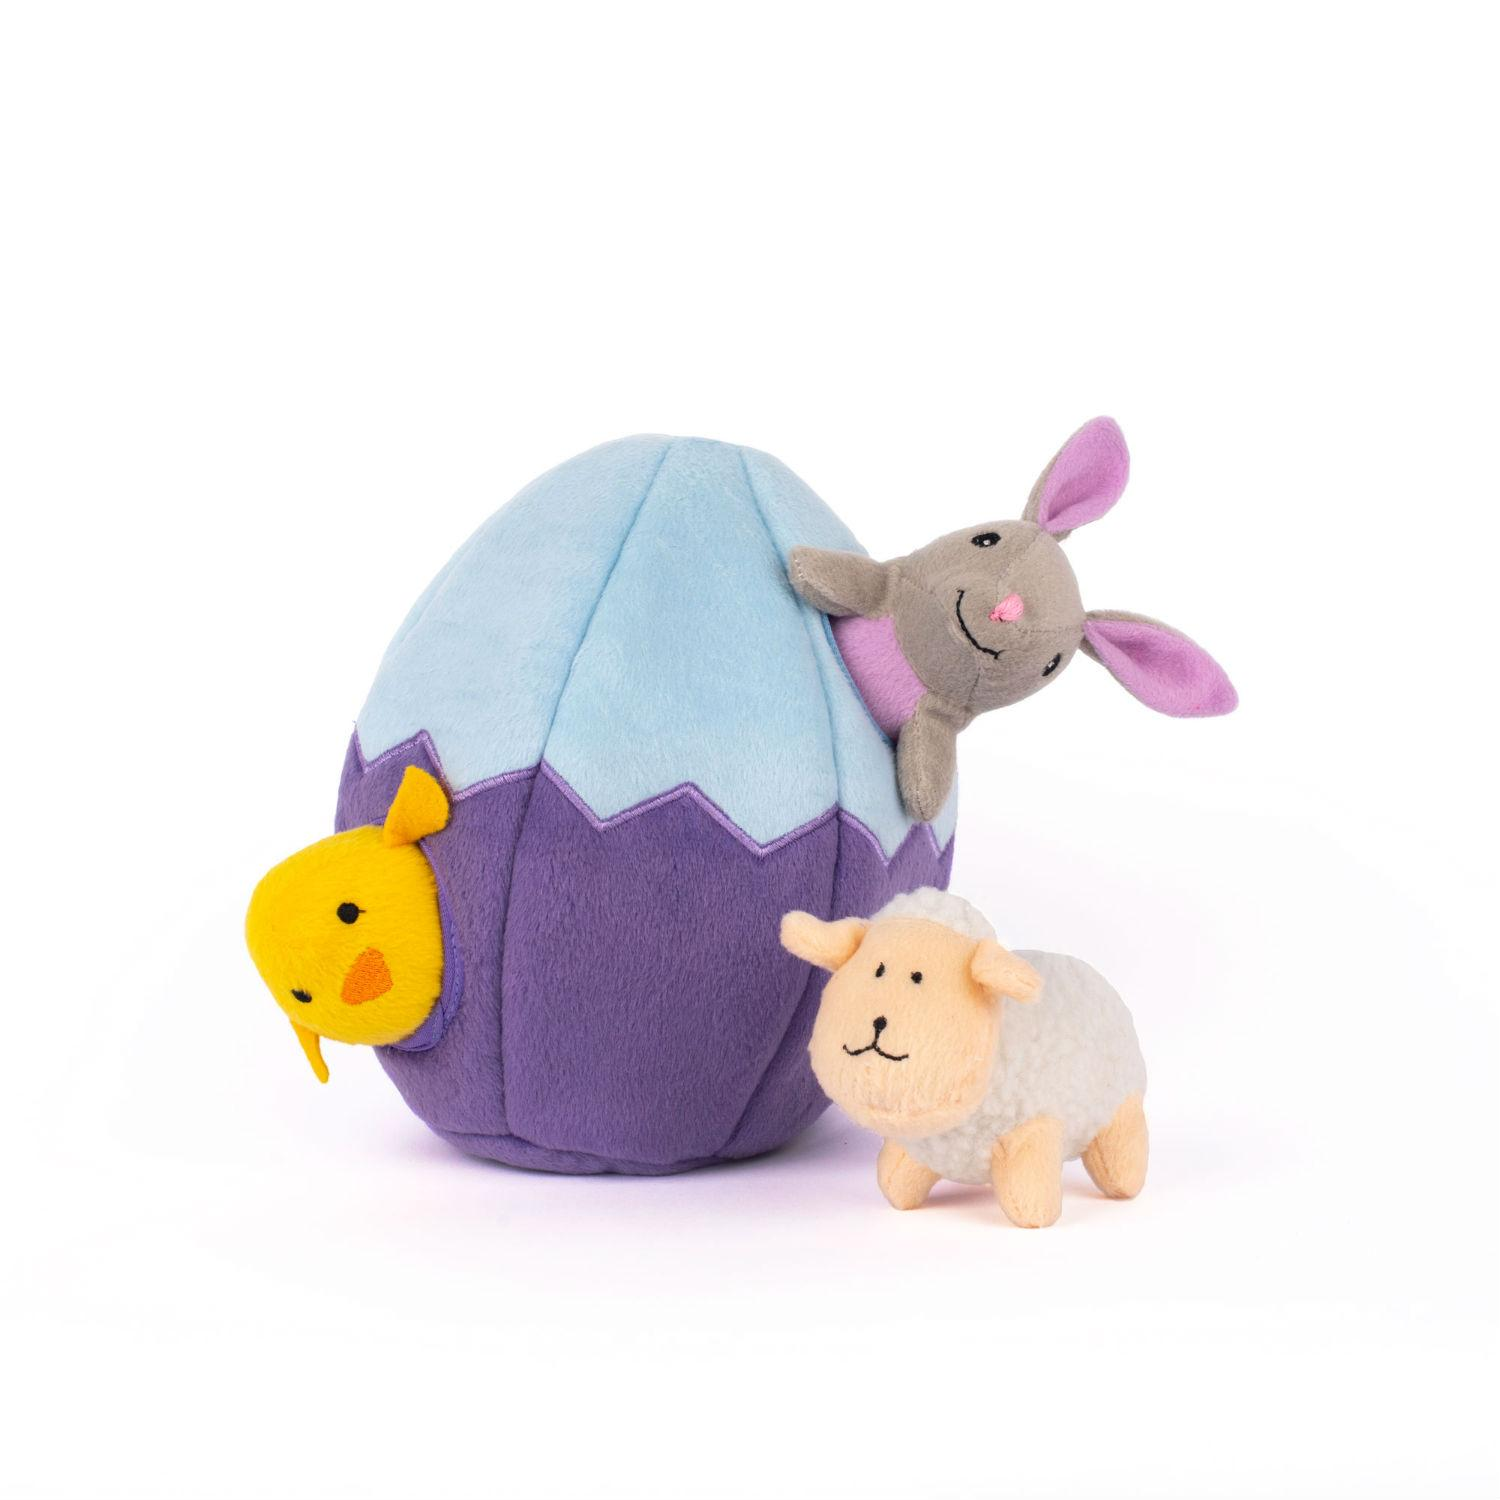 ZippyPaws Burrow Dog Toy - Easter Egg and Friends